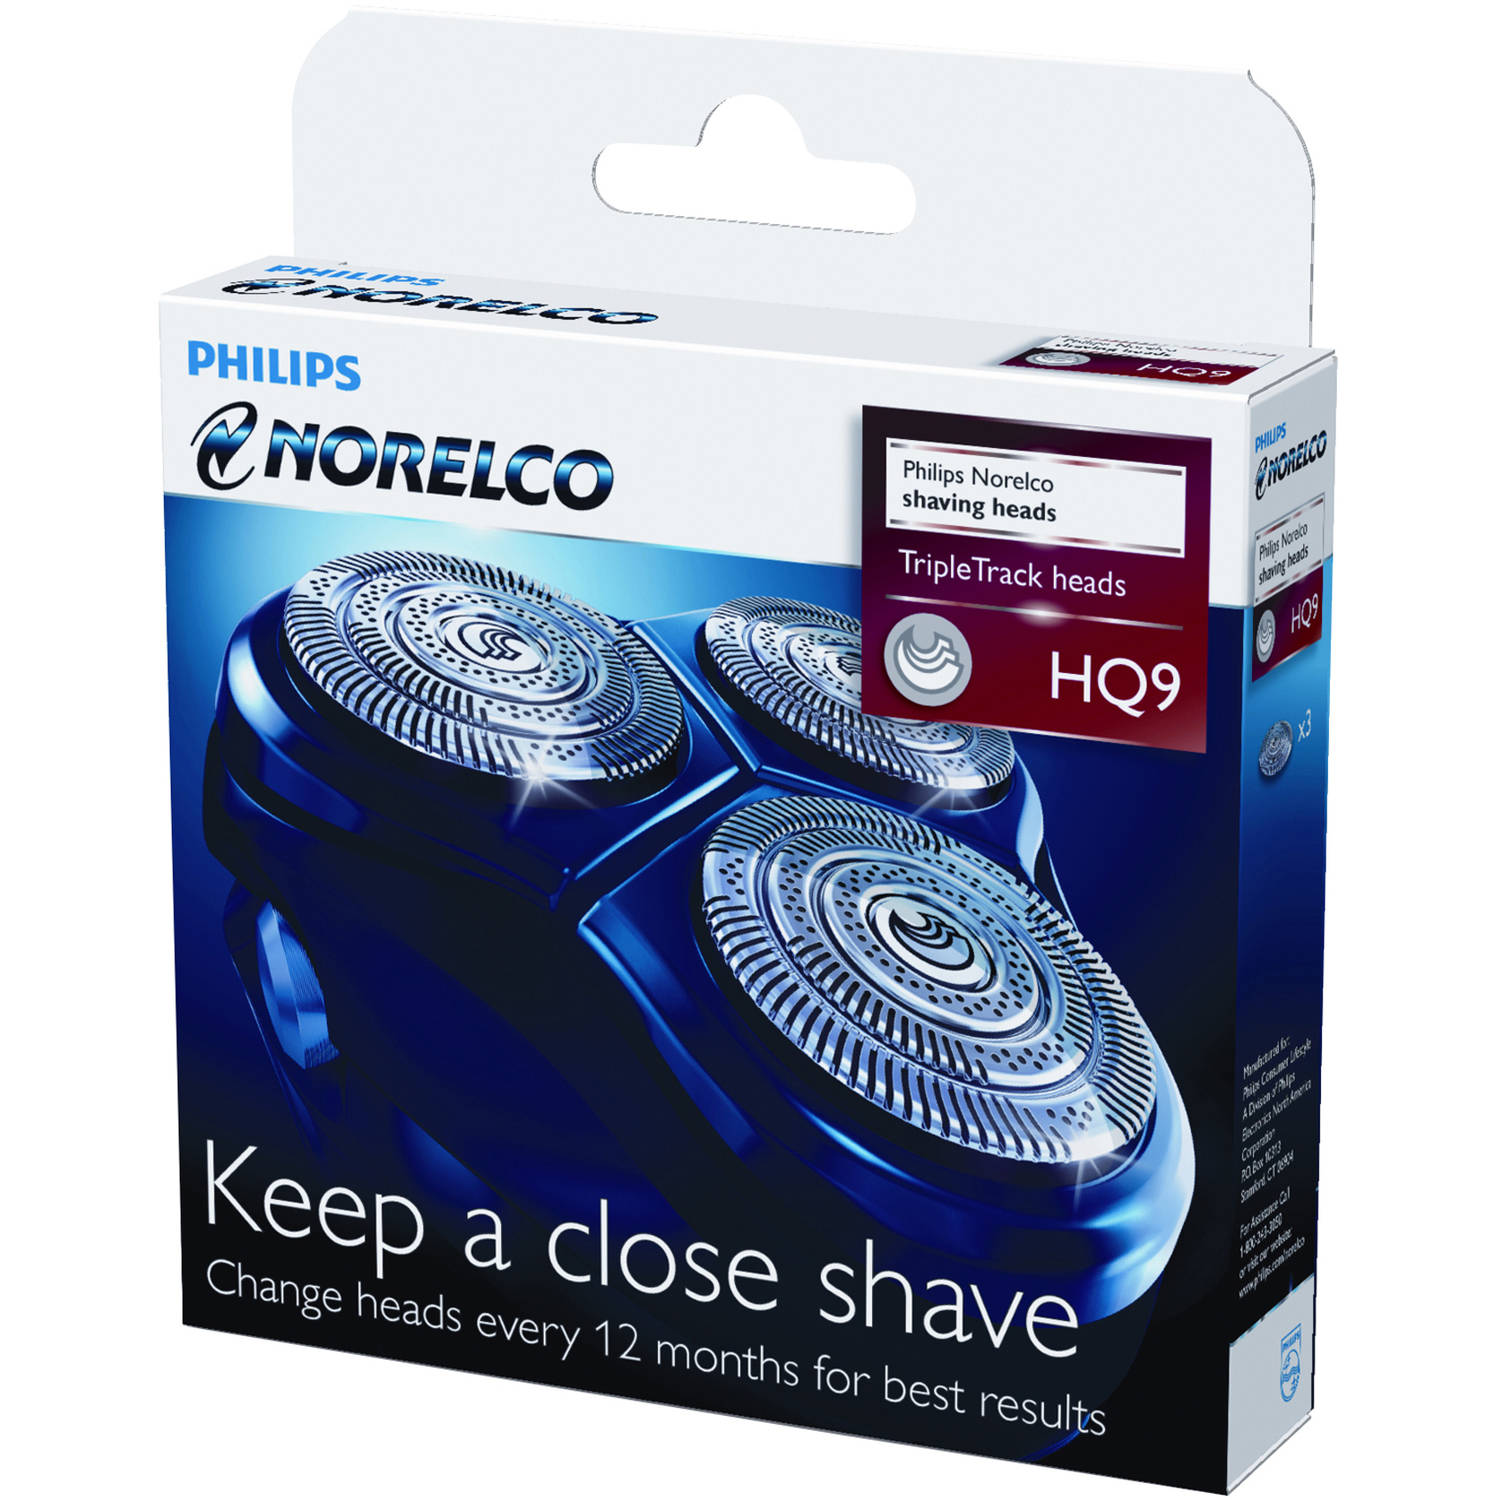 Philips Norelco Replacement Shaving Heads, HQ9/52